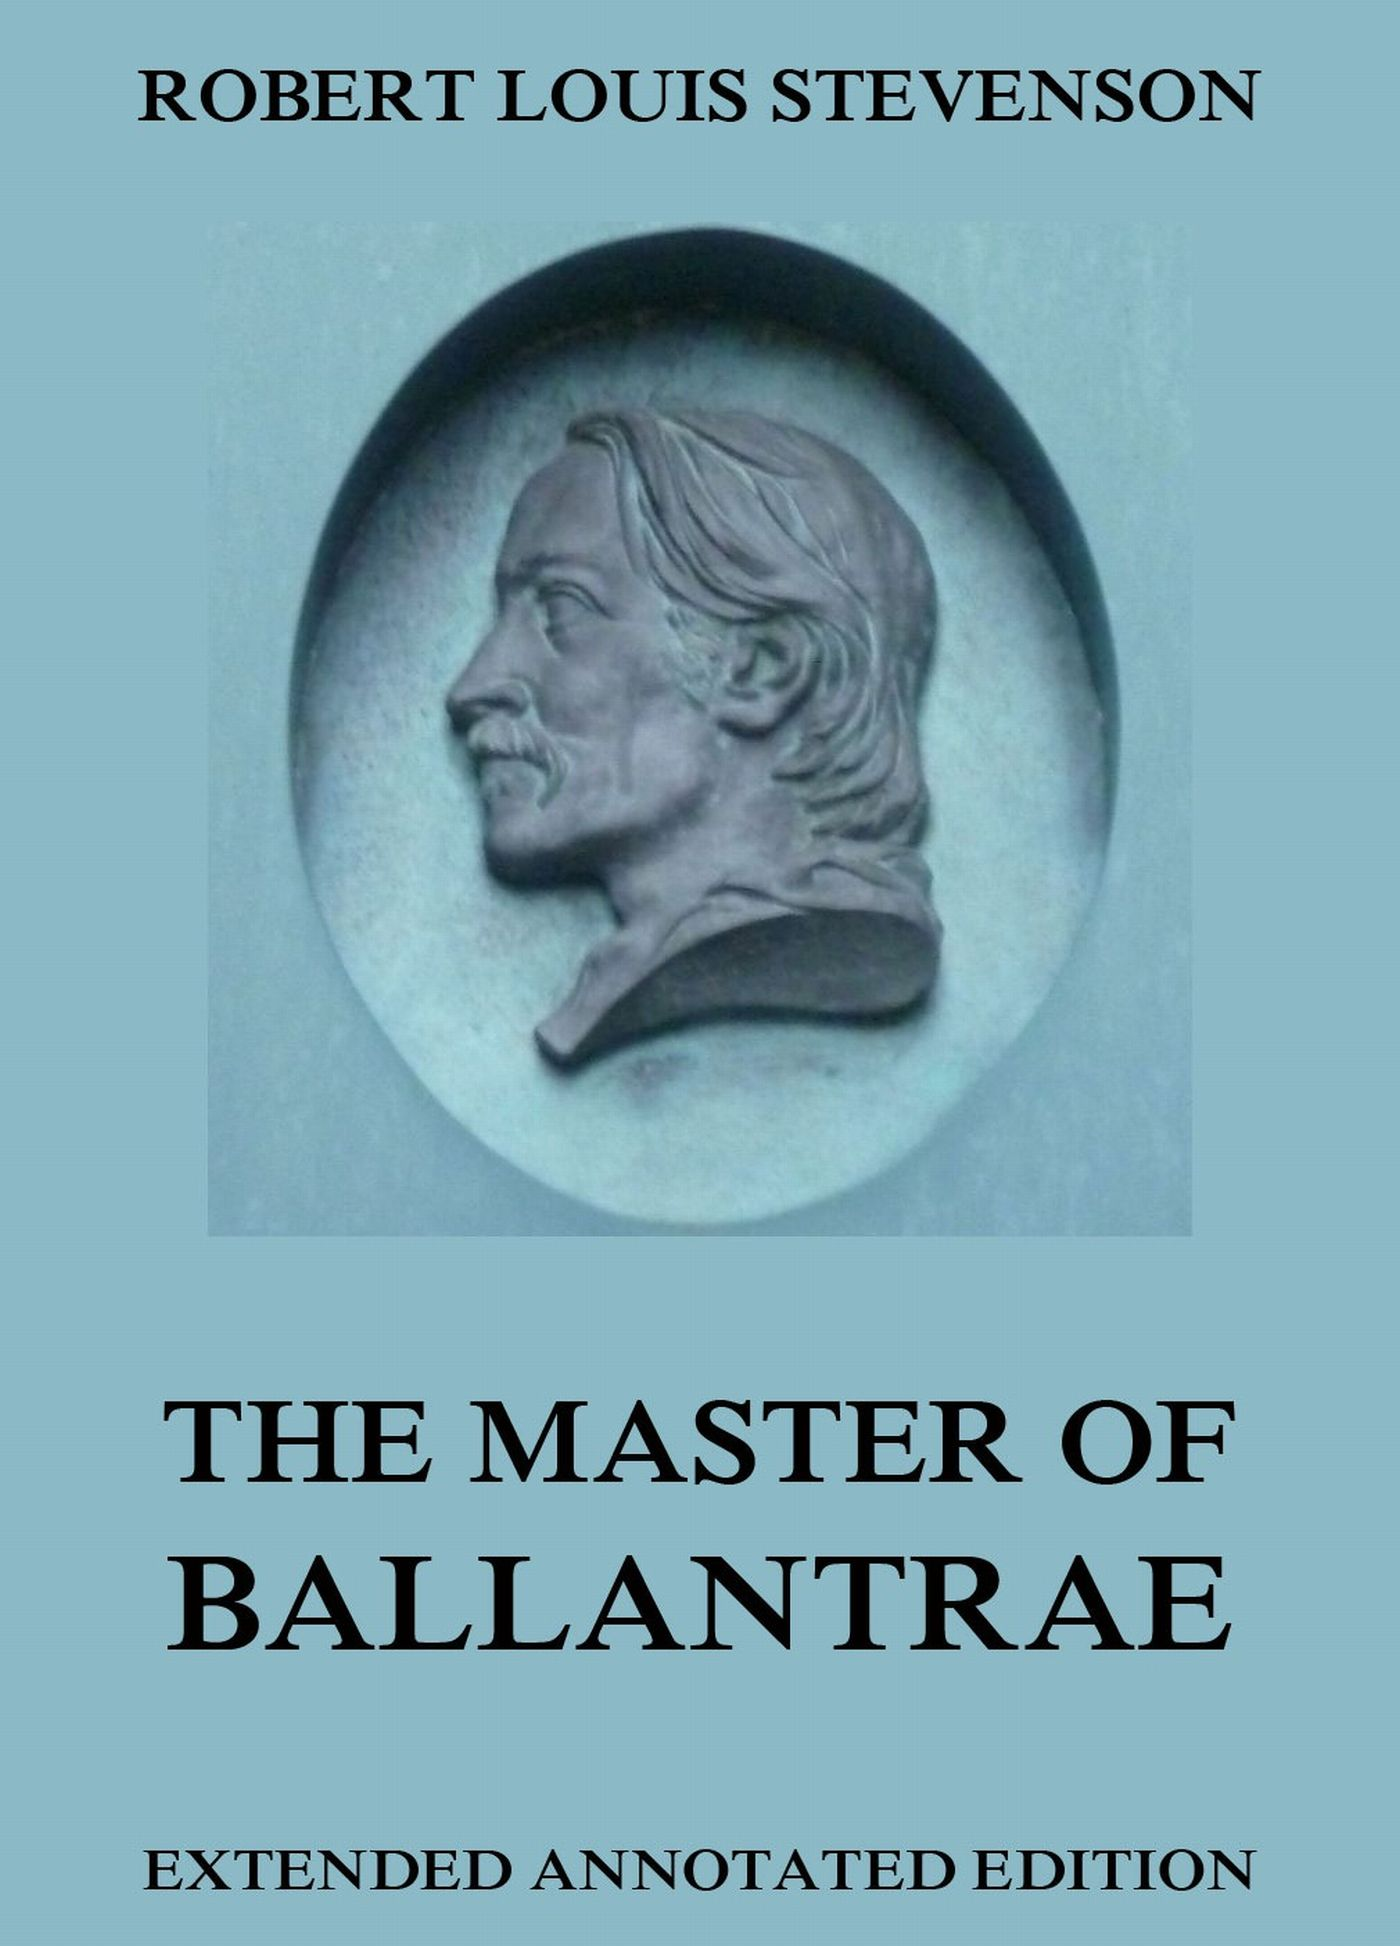 лучшая цена Robert Louis Stevenson The Master of Ballantrae